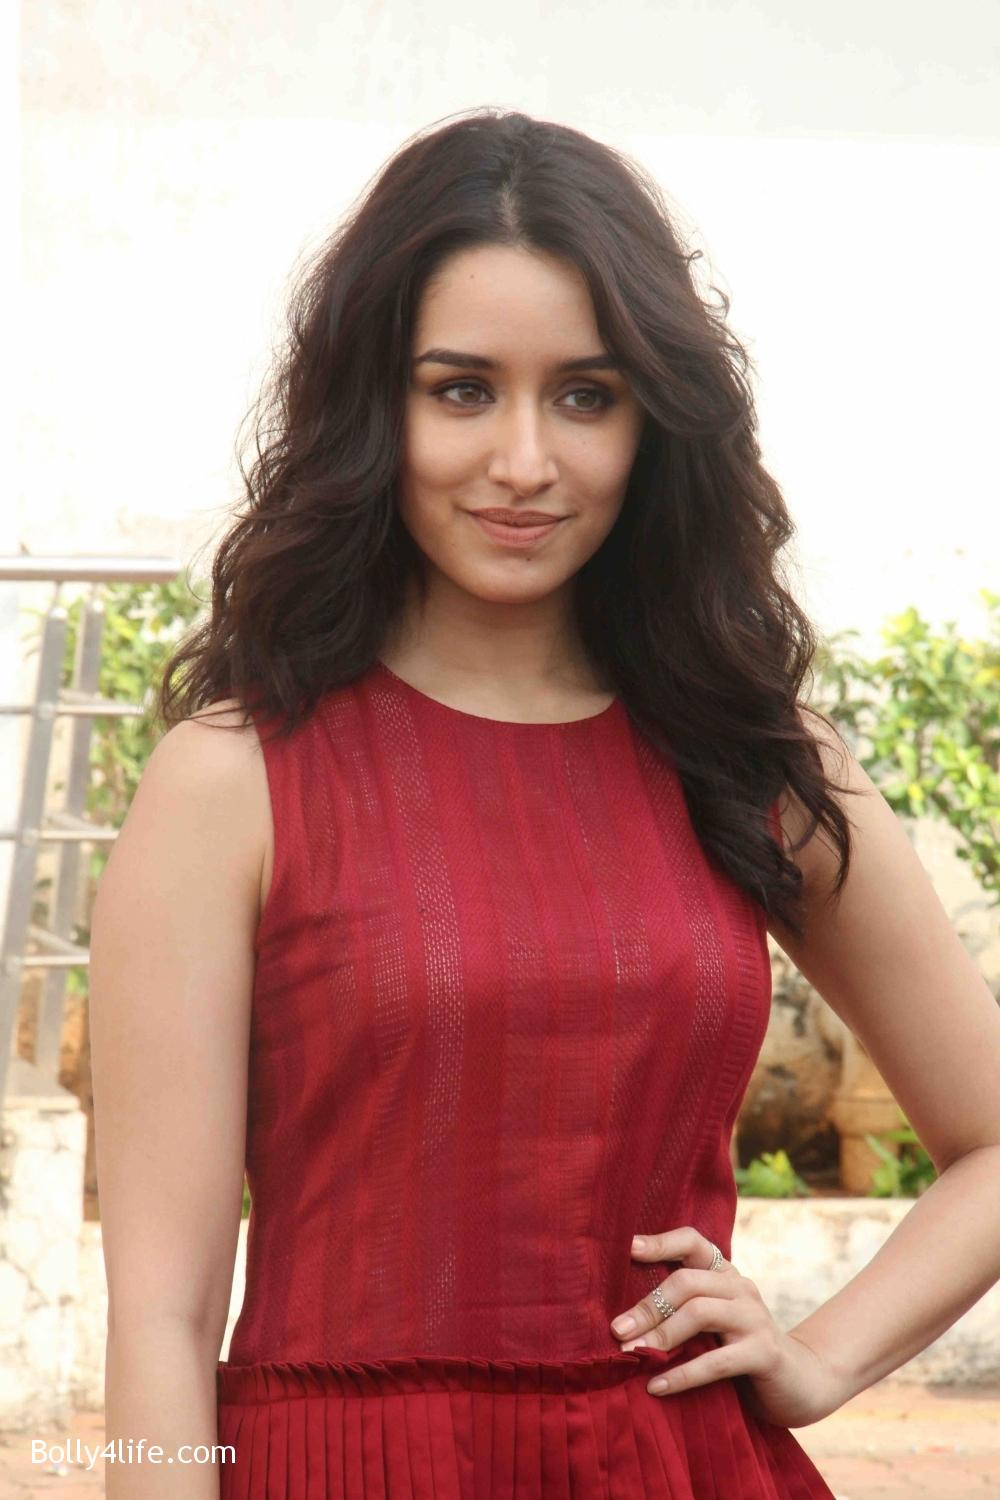 Shraddha-Kapoor-during-the-promotion-of-film-Ok-Jaanu-on-the-sets-Star-Plus-singing-reality-show-Dil-Hai-Hindustani-2.jpg